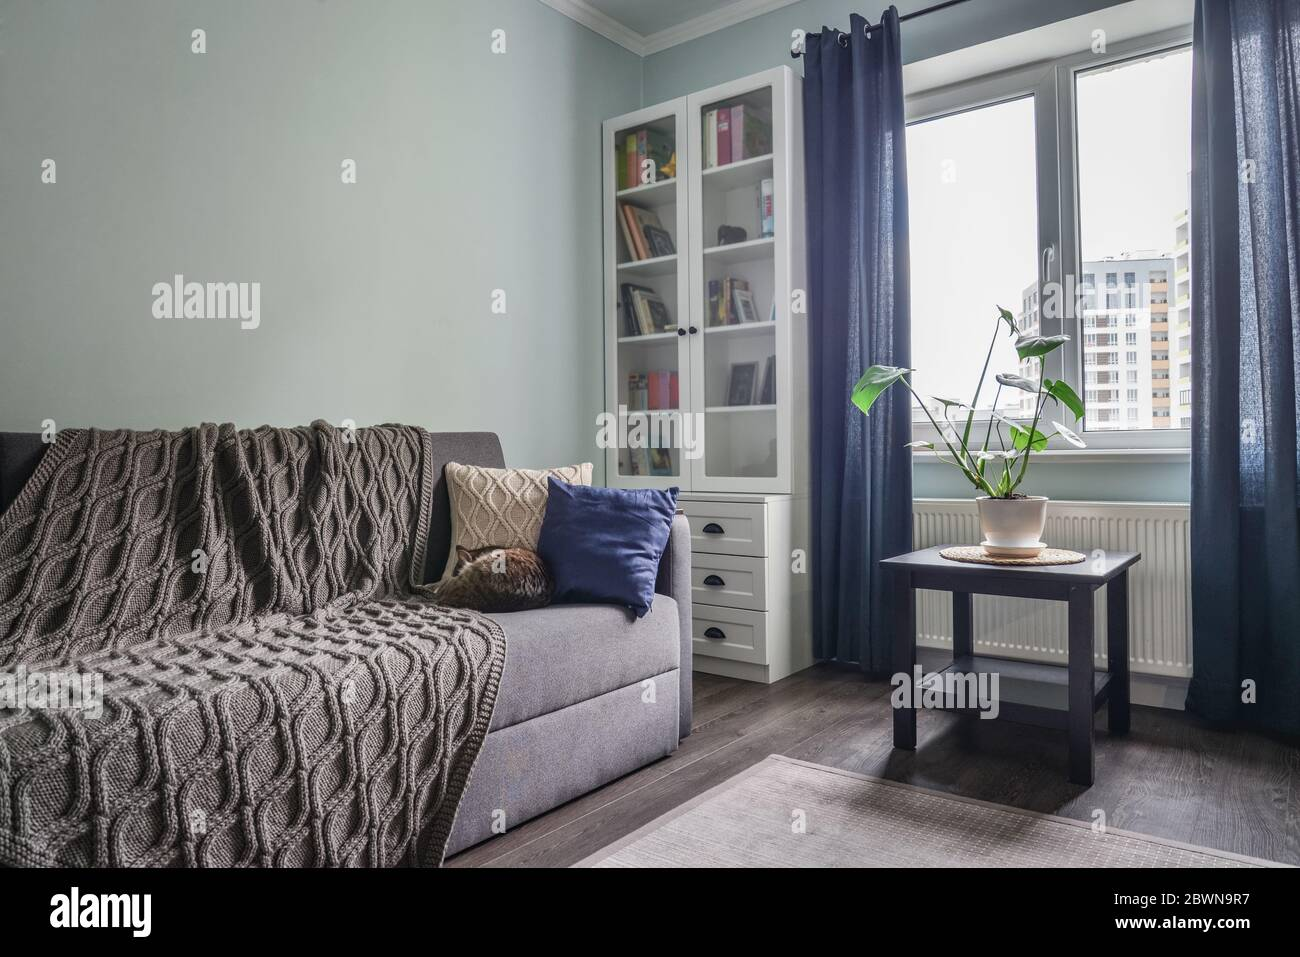 Picture of: Light Cozy Teen Room With White Bookcases Grey Sofa And Blue Walls Stock Photo Alamy